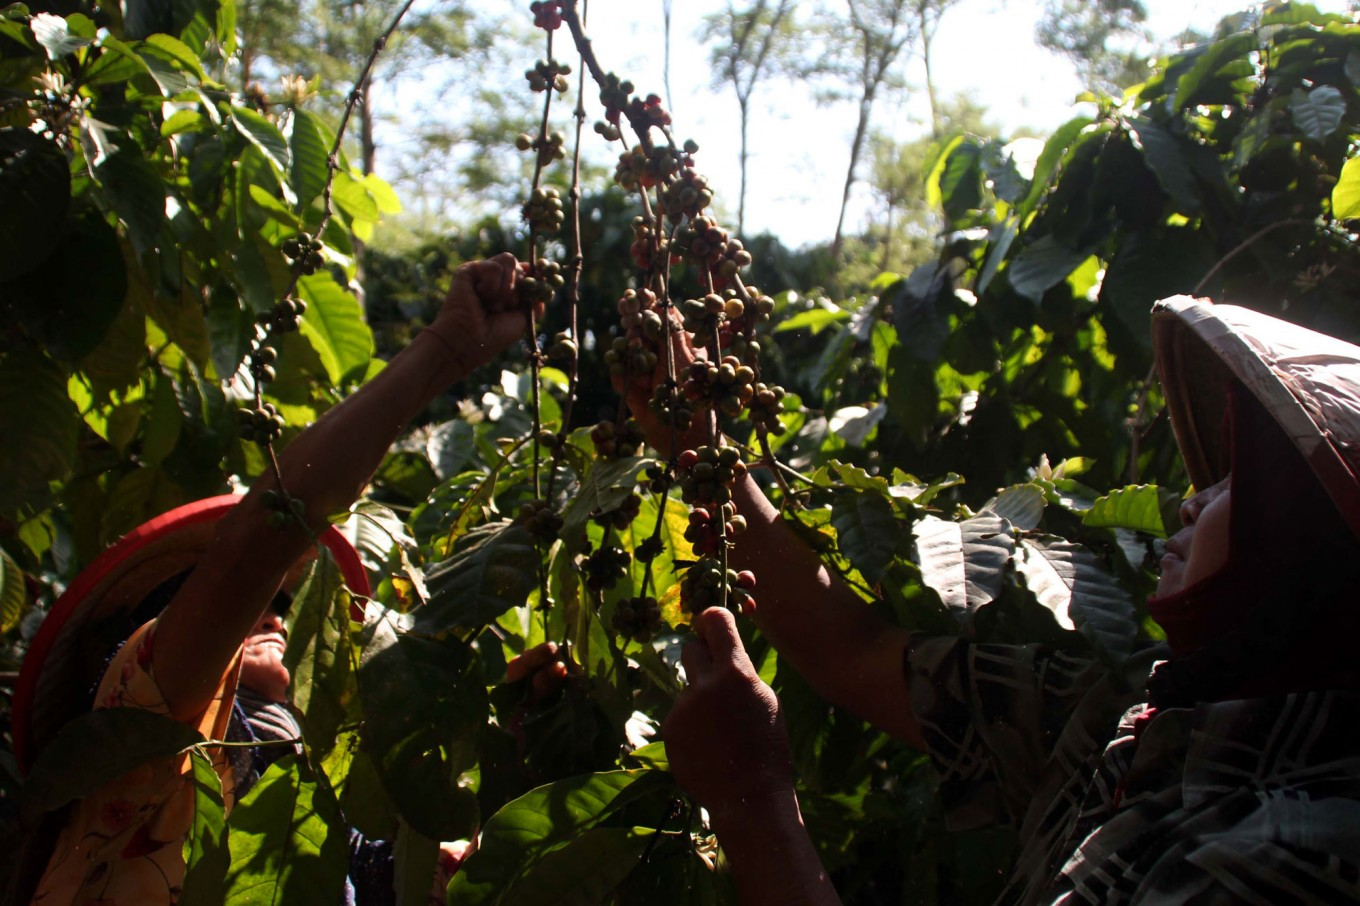 Women pick coffee cherries at the Assinan Plantation of PT Perkebunan Negara IX in Semarang regency, Central Java. The harvest period will last until October at the 352-hectare plantation, which is projected to produce 350 metric tons. The coffee is exported to Italy, Japan and South Korea. JP/Suherdjoko